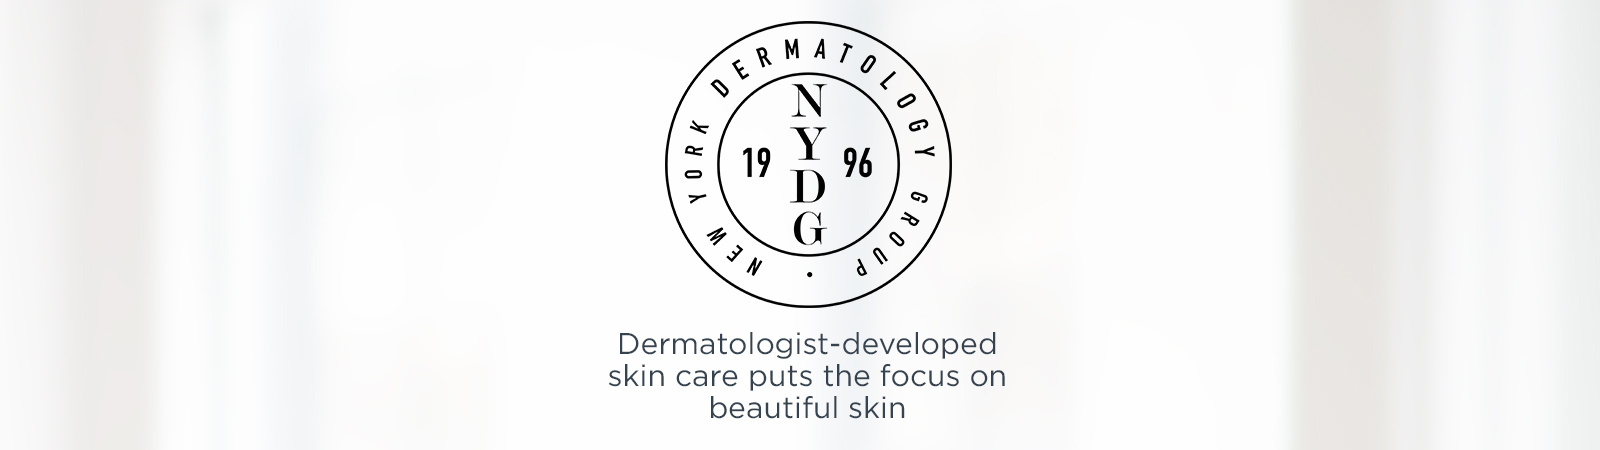 NYDG.  Dermatologist-developed skin care puts the focus on beautiful skin.